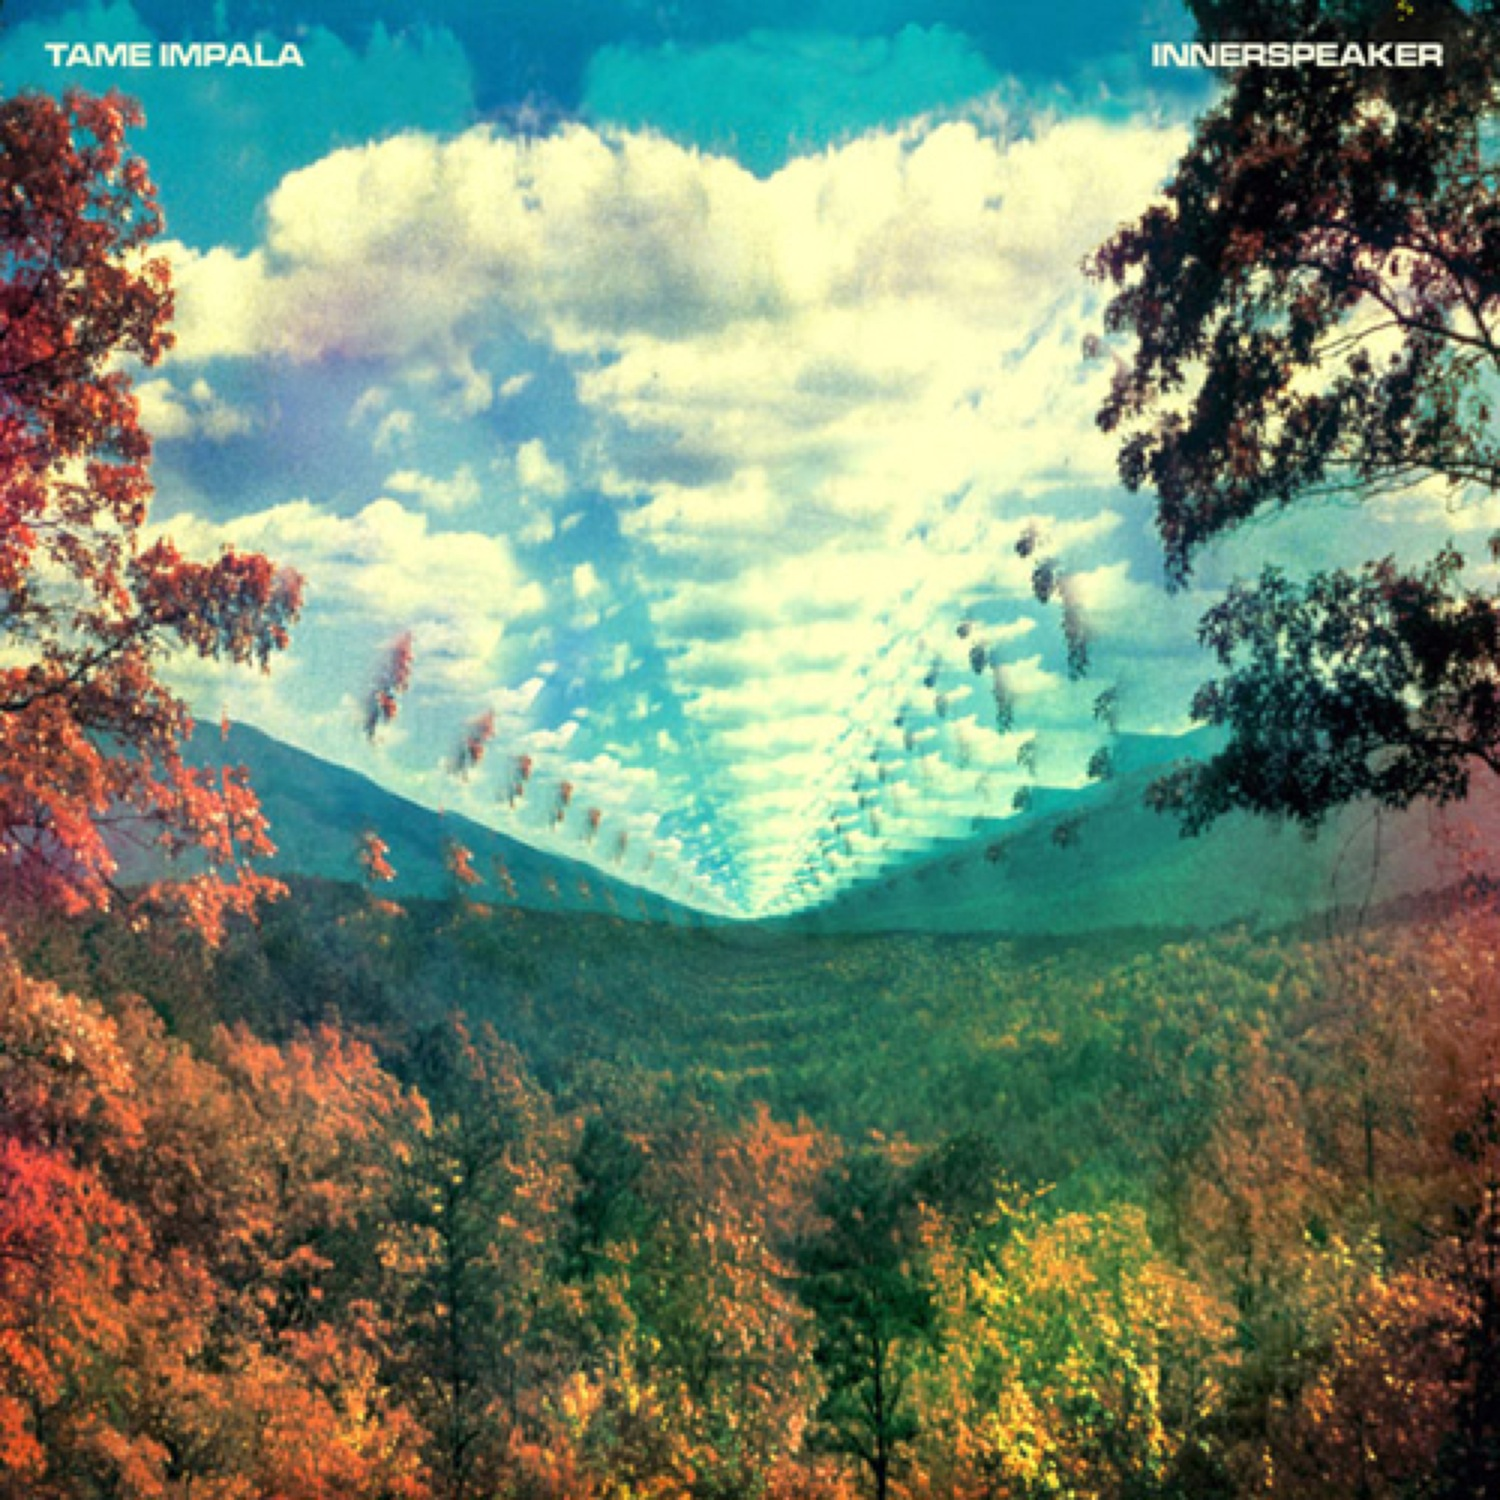 Album Cover Feature Tame Impala Innerspeaker